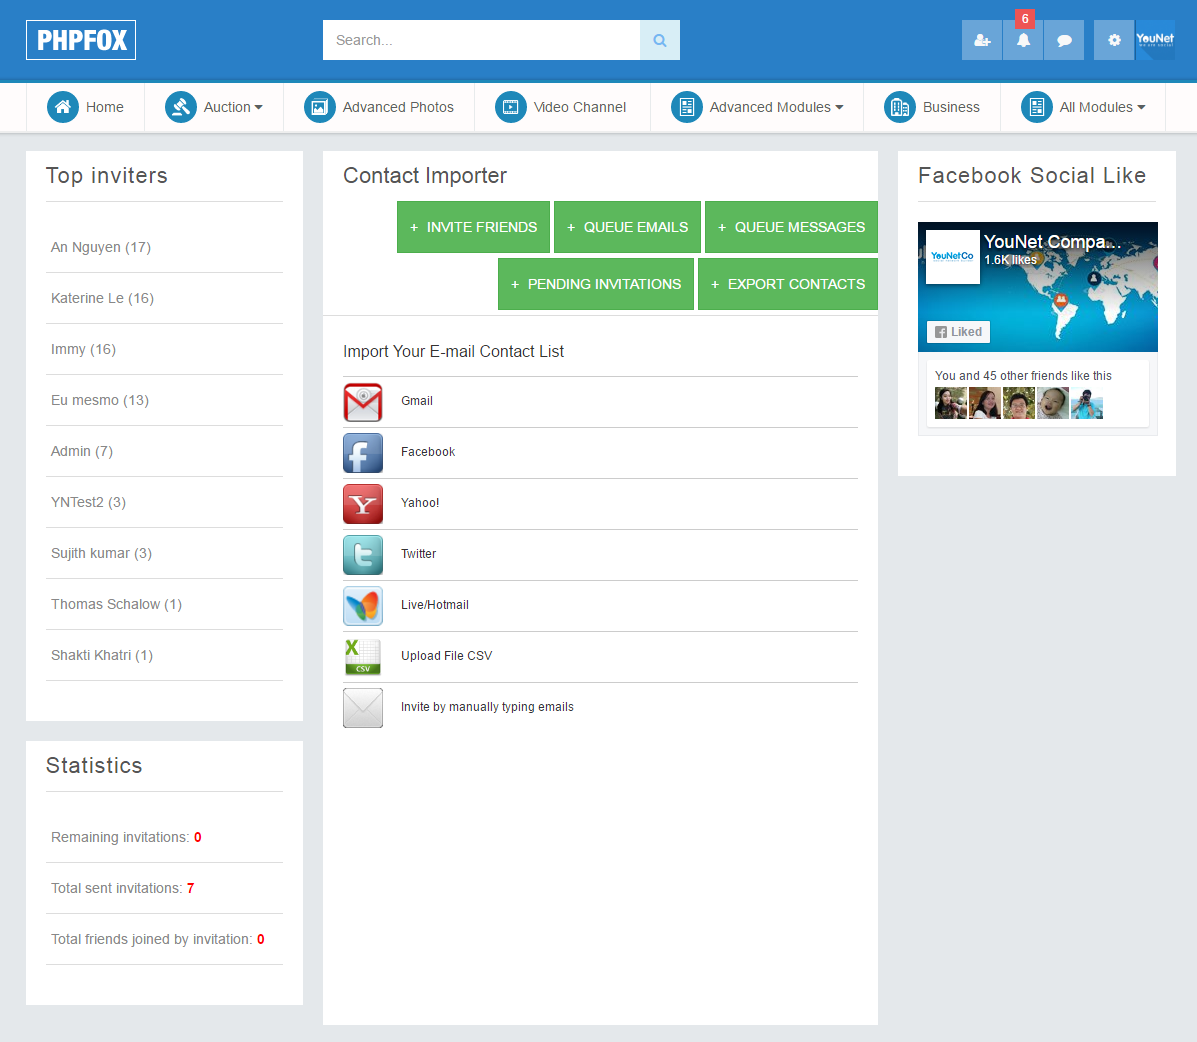 Japan Importers Contact Emails Mail: YouNetCo - PhpFox Apps, Themes